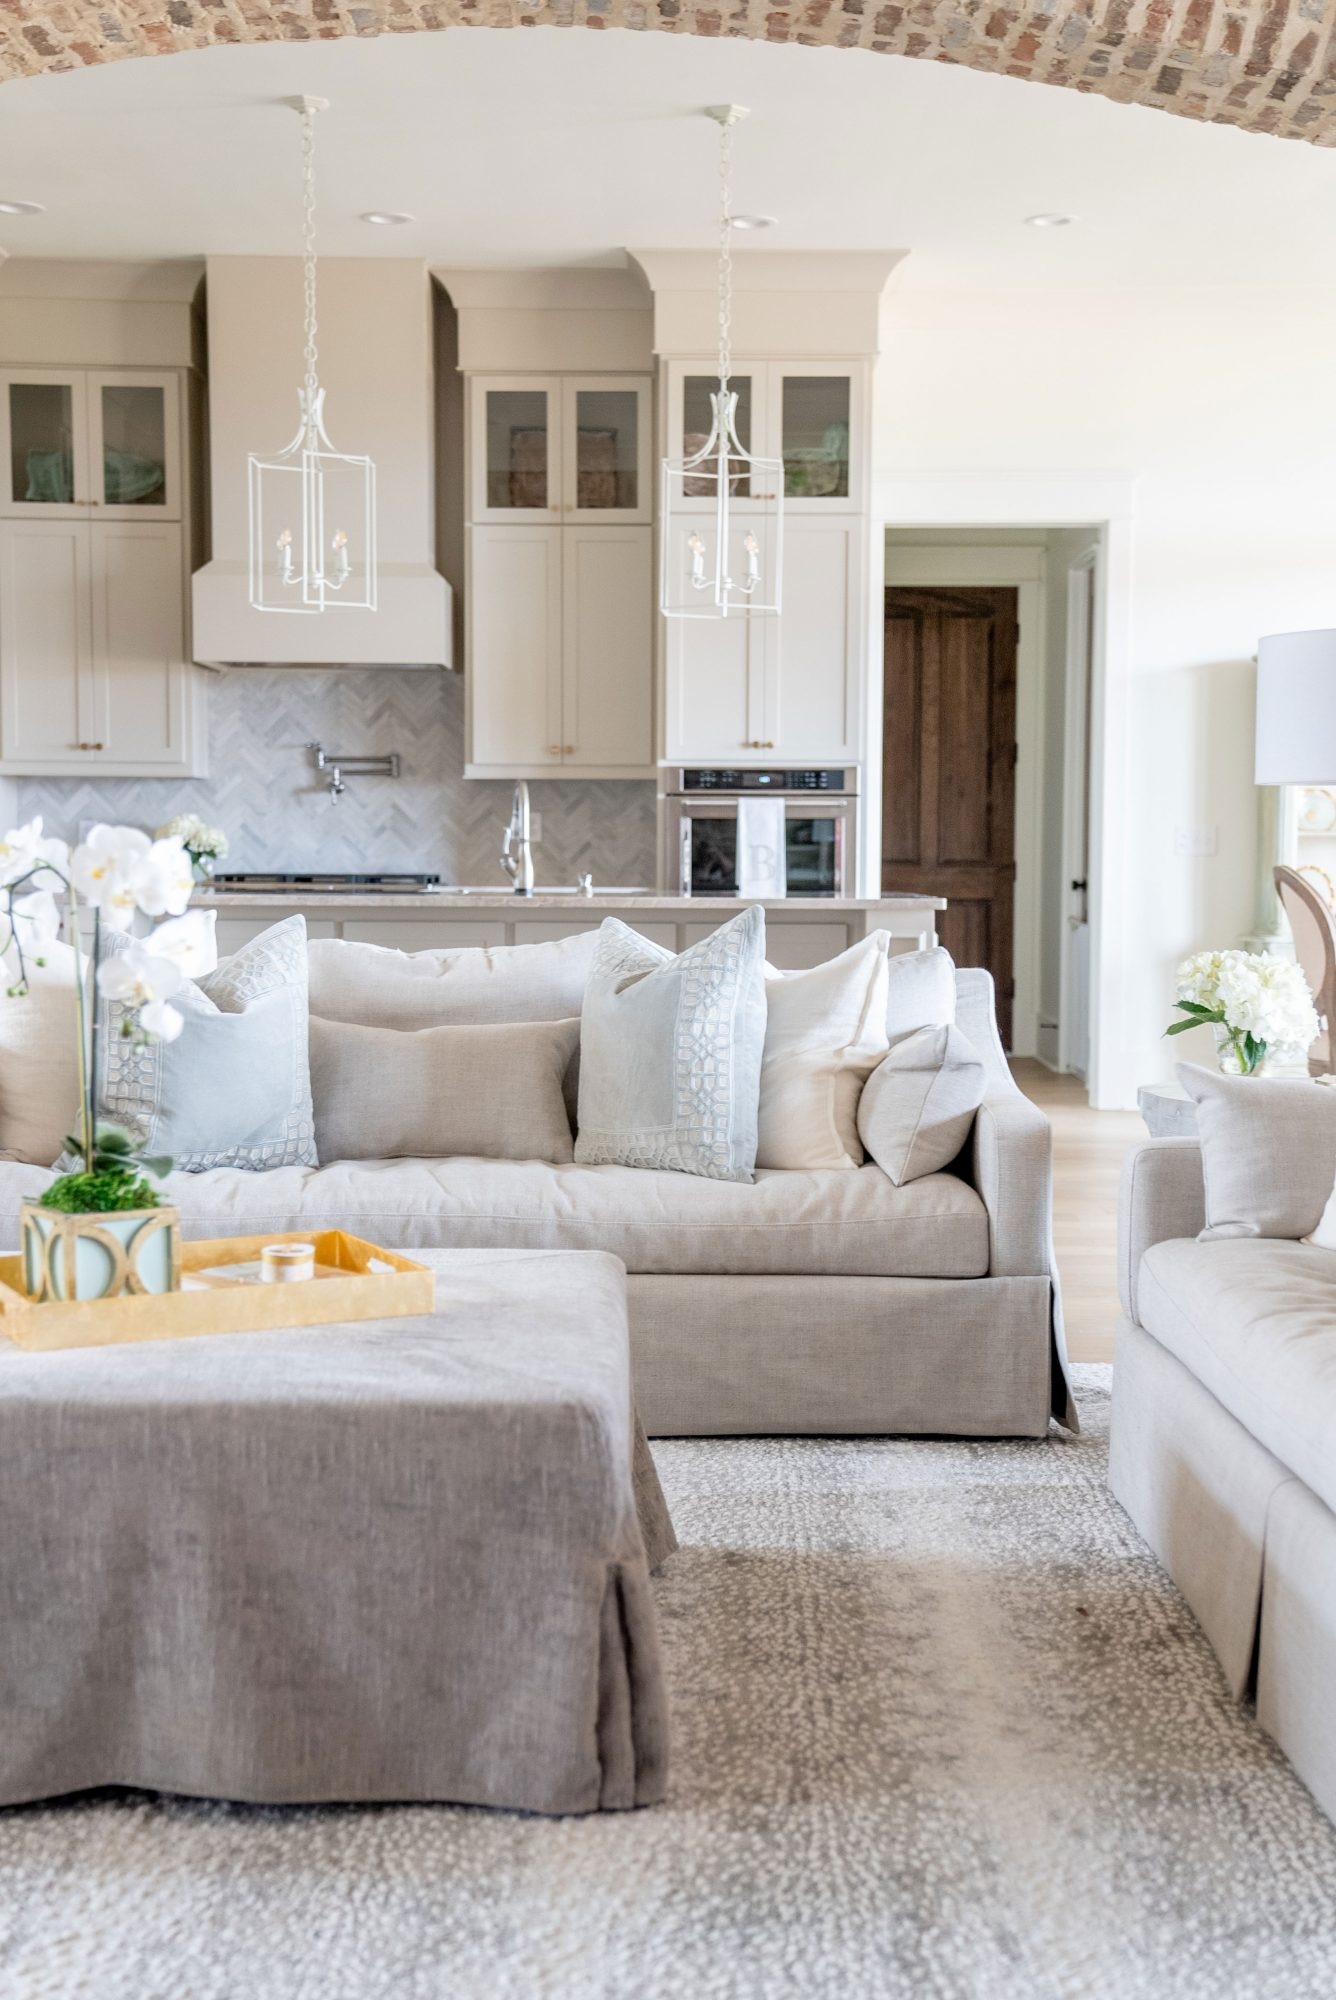 Open Living Room and Kitchen Beige Cabinets